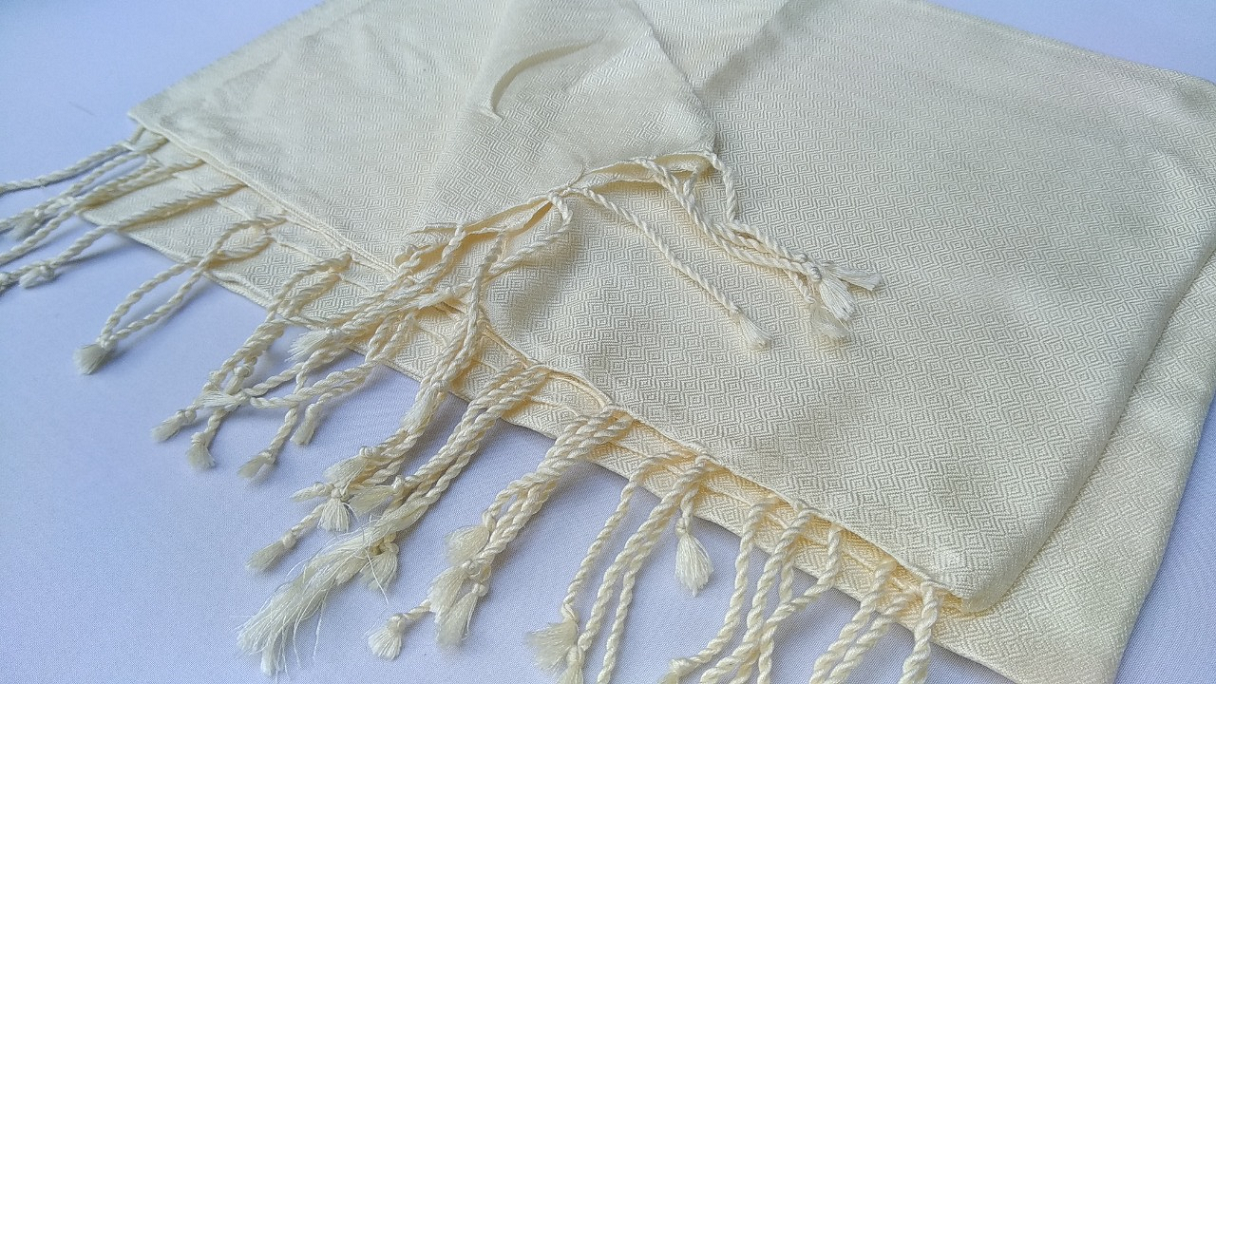 blank silk scarves in assorted sizes suitable for dyers and artists